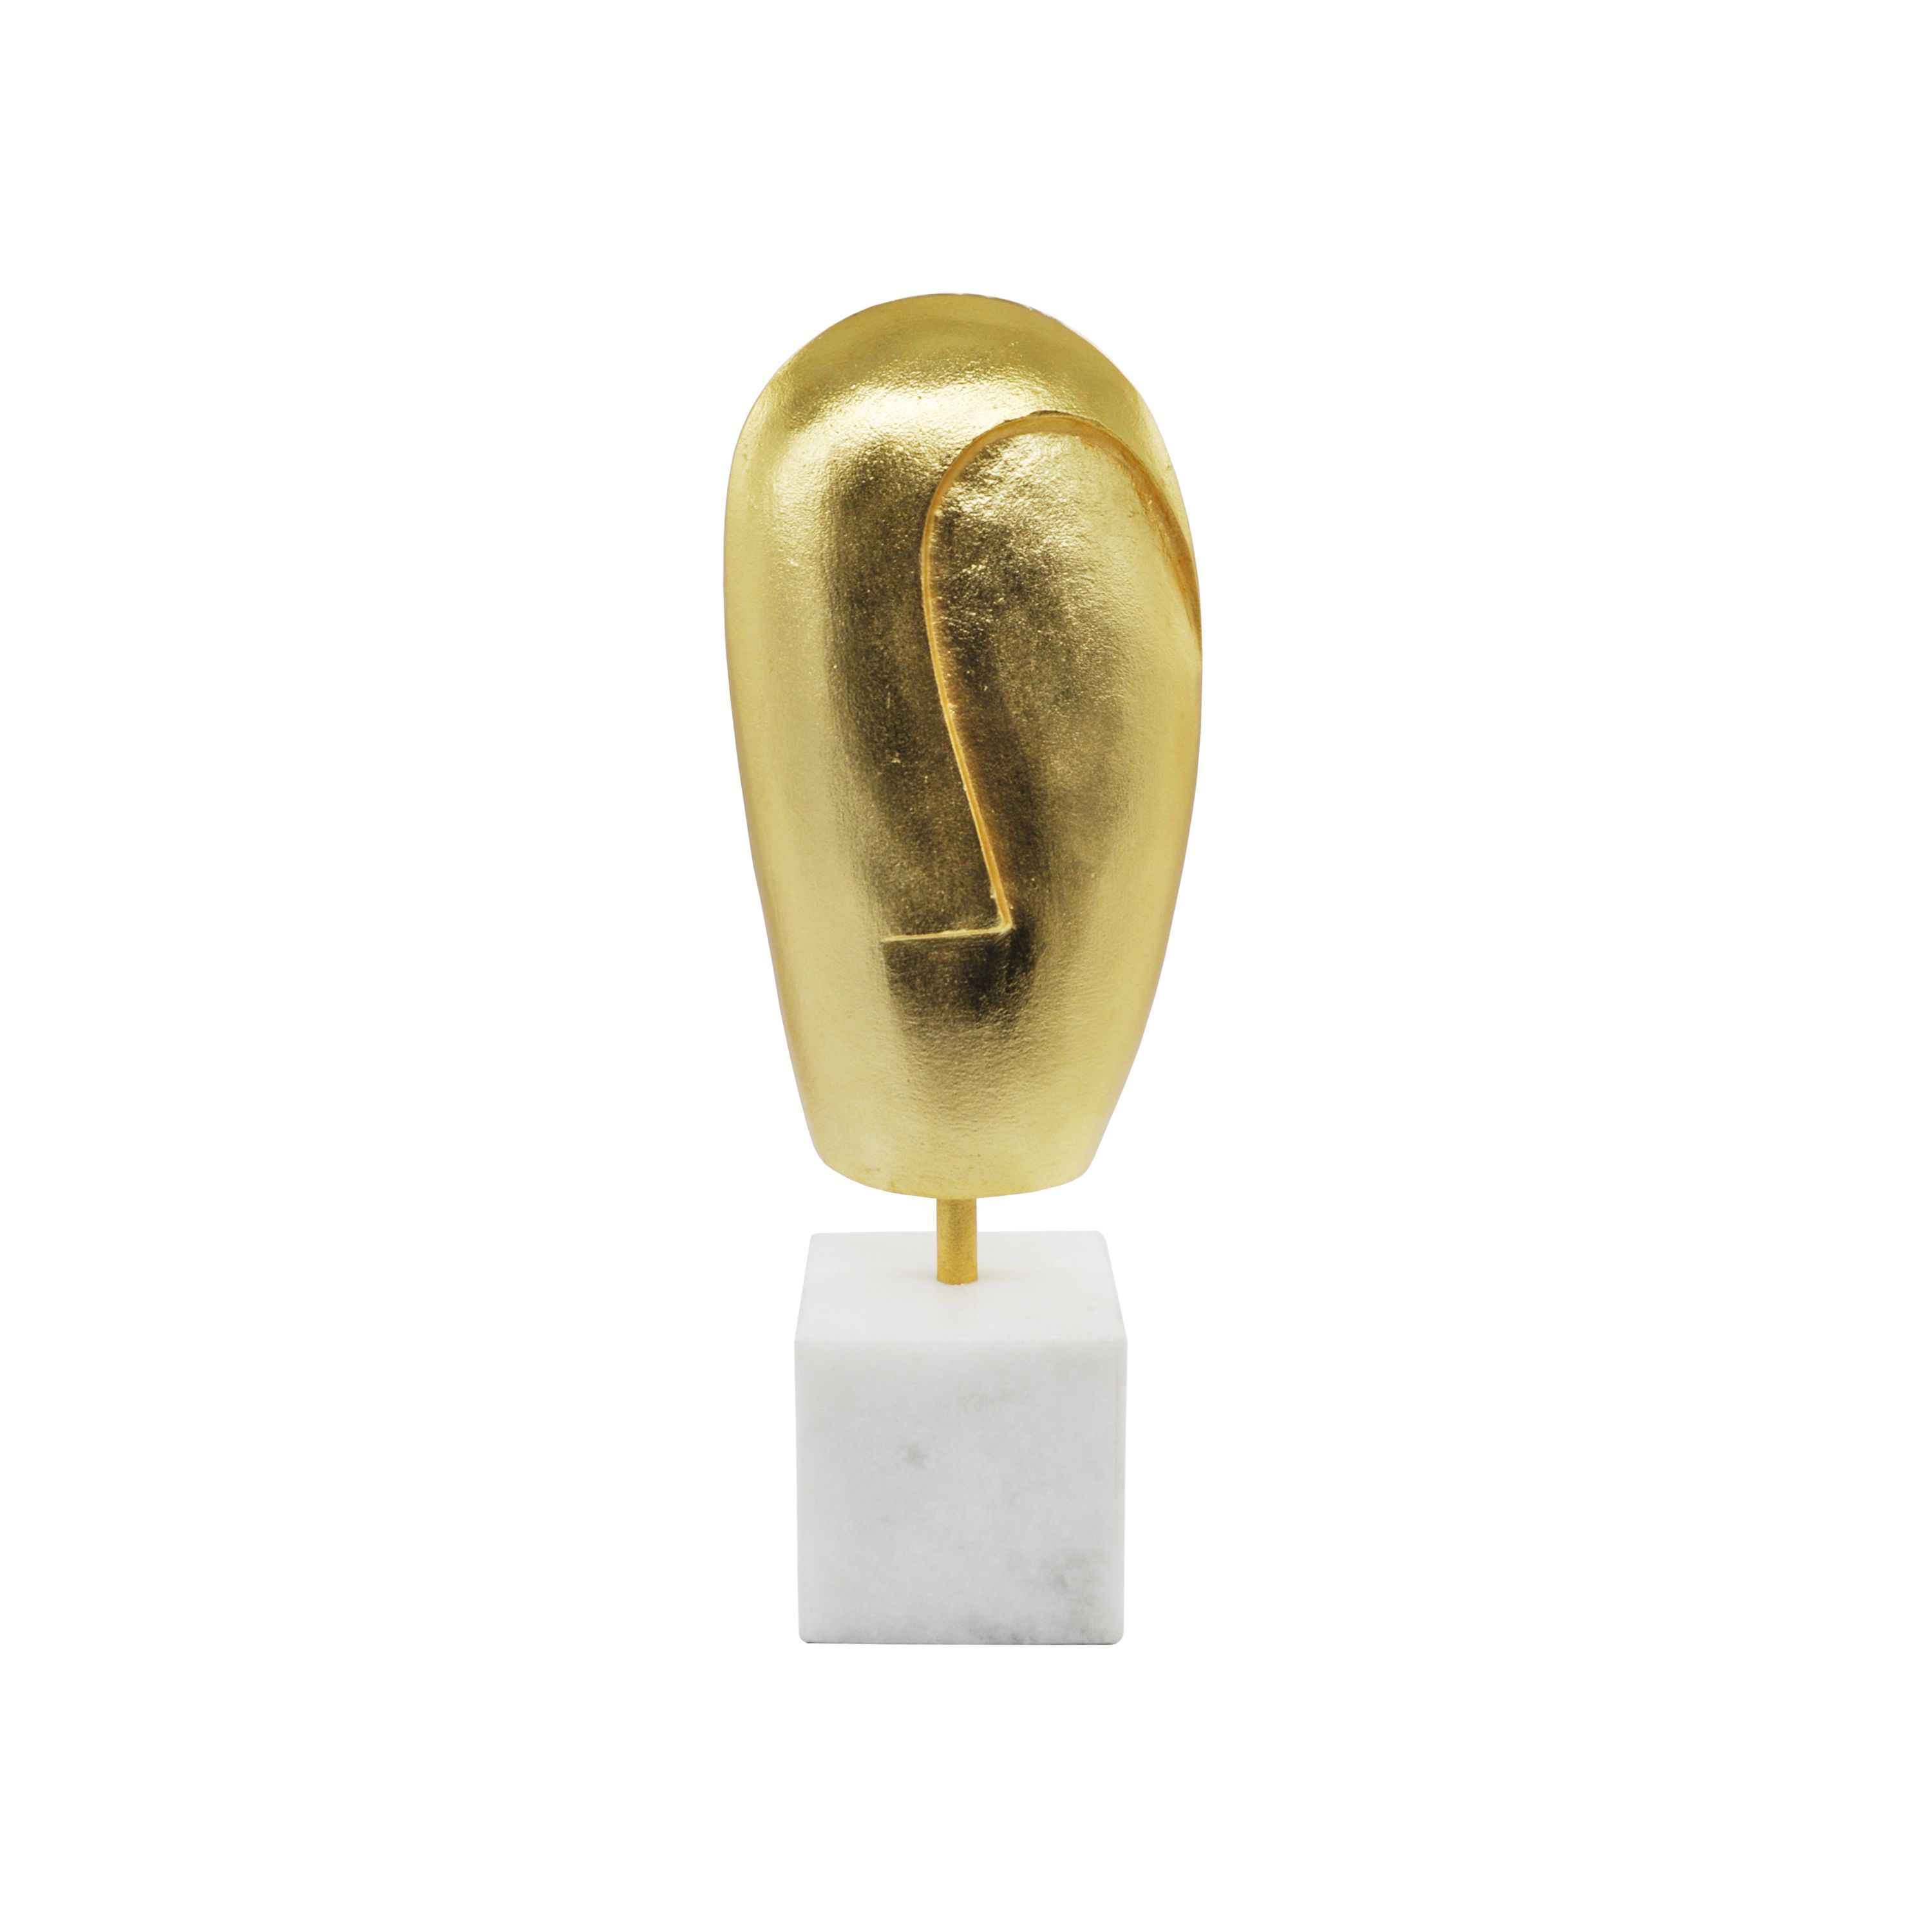 Abbie Gold Abstract Face Sculpture on White Marble